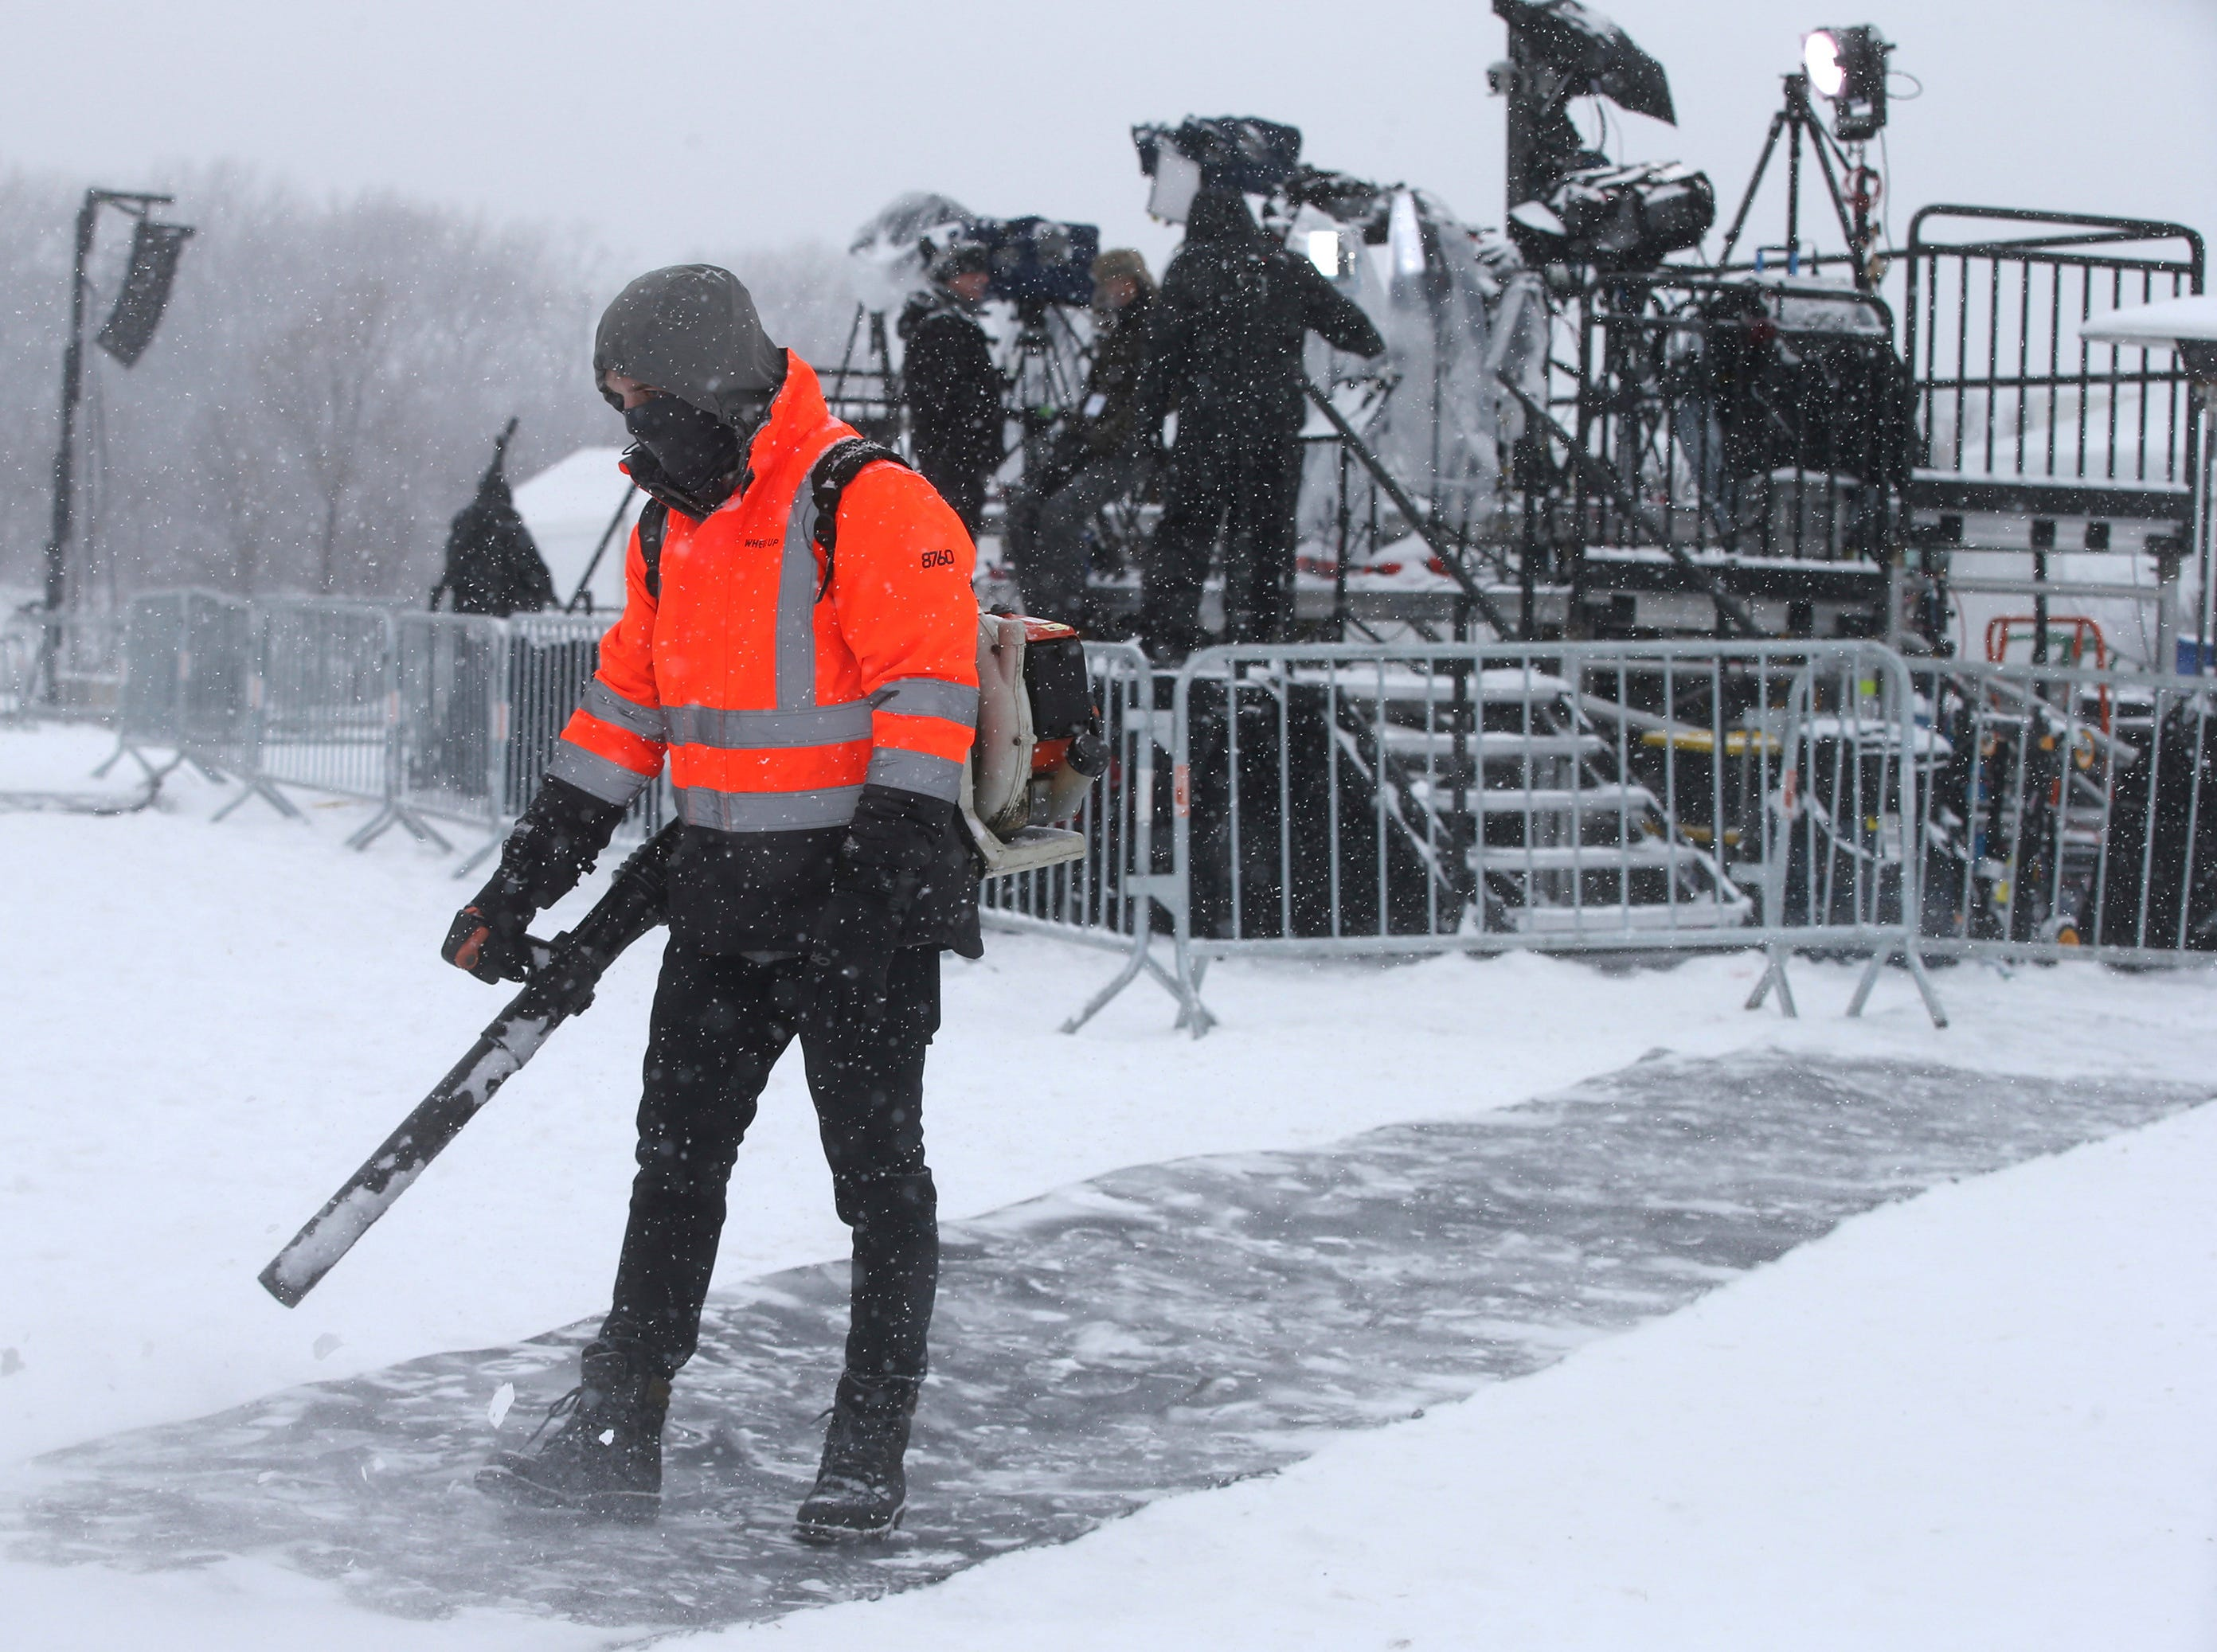 Snow continues to fall as a worker clears snow off a runner and media members arrange equipment on a riser prior to Democratic Sen. Amy Klobuchar's announcement of her decision in the race for president at a rally Sunday, Feb. 10, 2019, at Boom Island Park in Minneapolis.